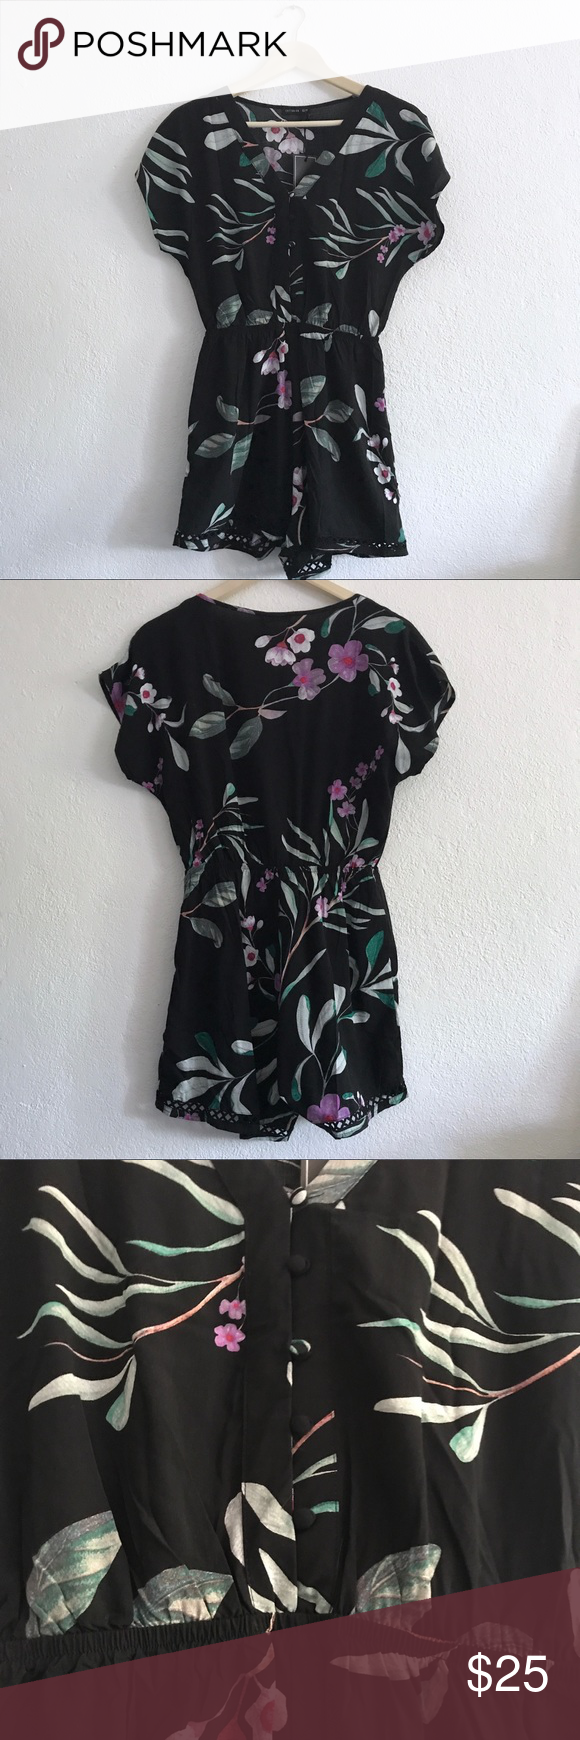 d3e44549131 Cotton On black floral romper jumpsuit Cotton On black floral romper  jumpsuit